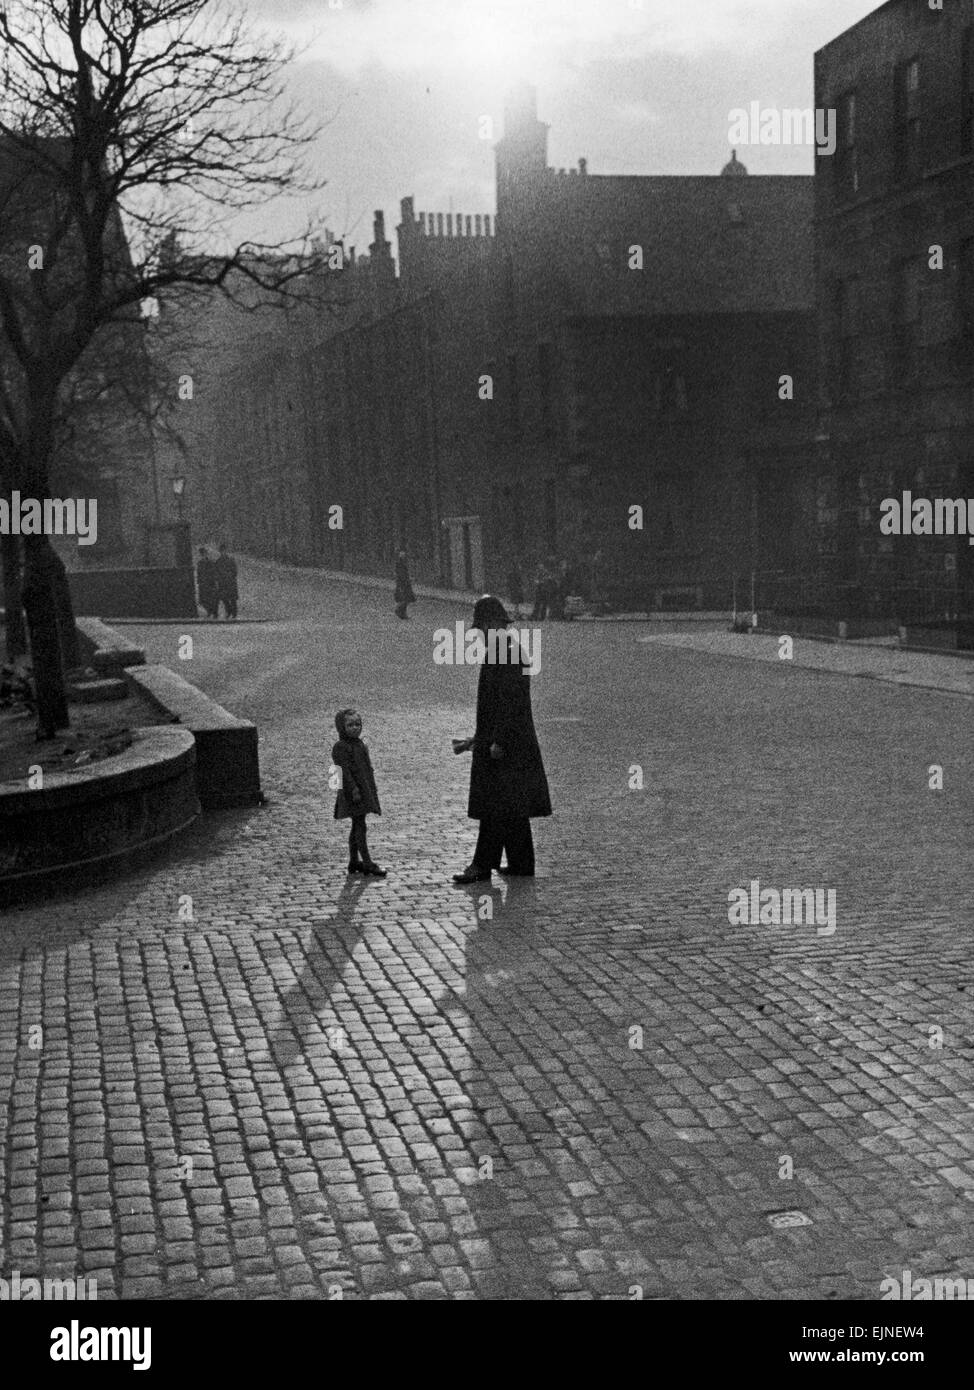 Edinburgh street scenes Policeman talking to lost child on a cobbled street in Edinburgh, Scotland. Scenic Atospheric - Stock Image